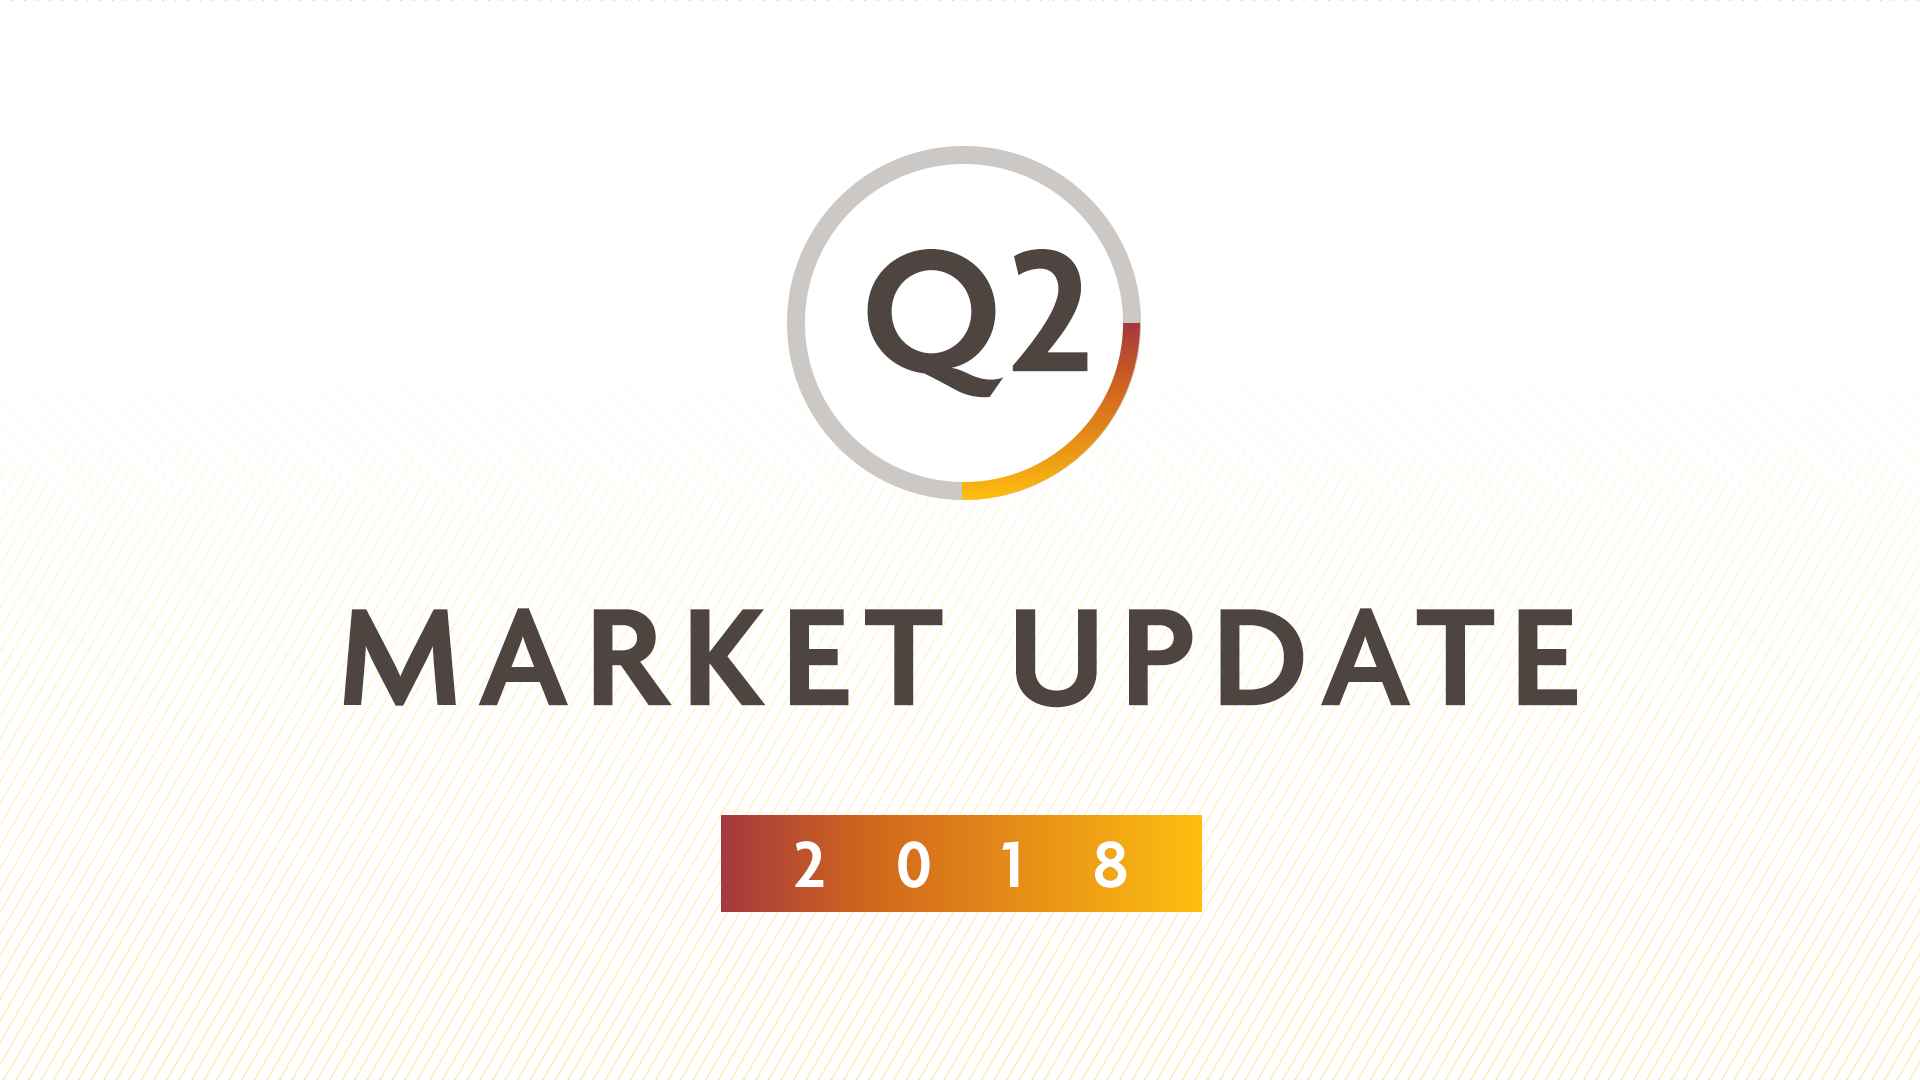 Q2 2018 Market update | Stocks rise, risk grows